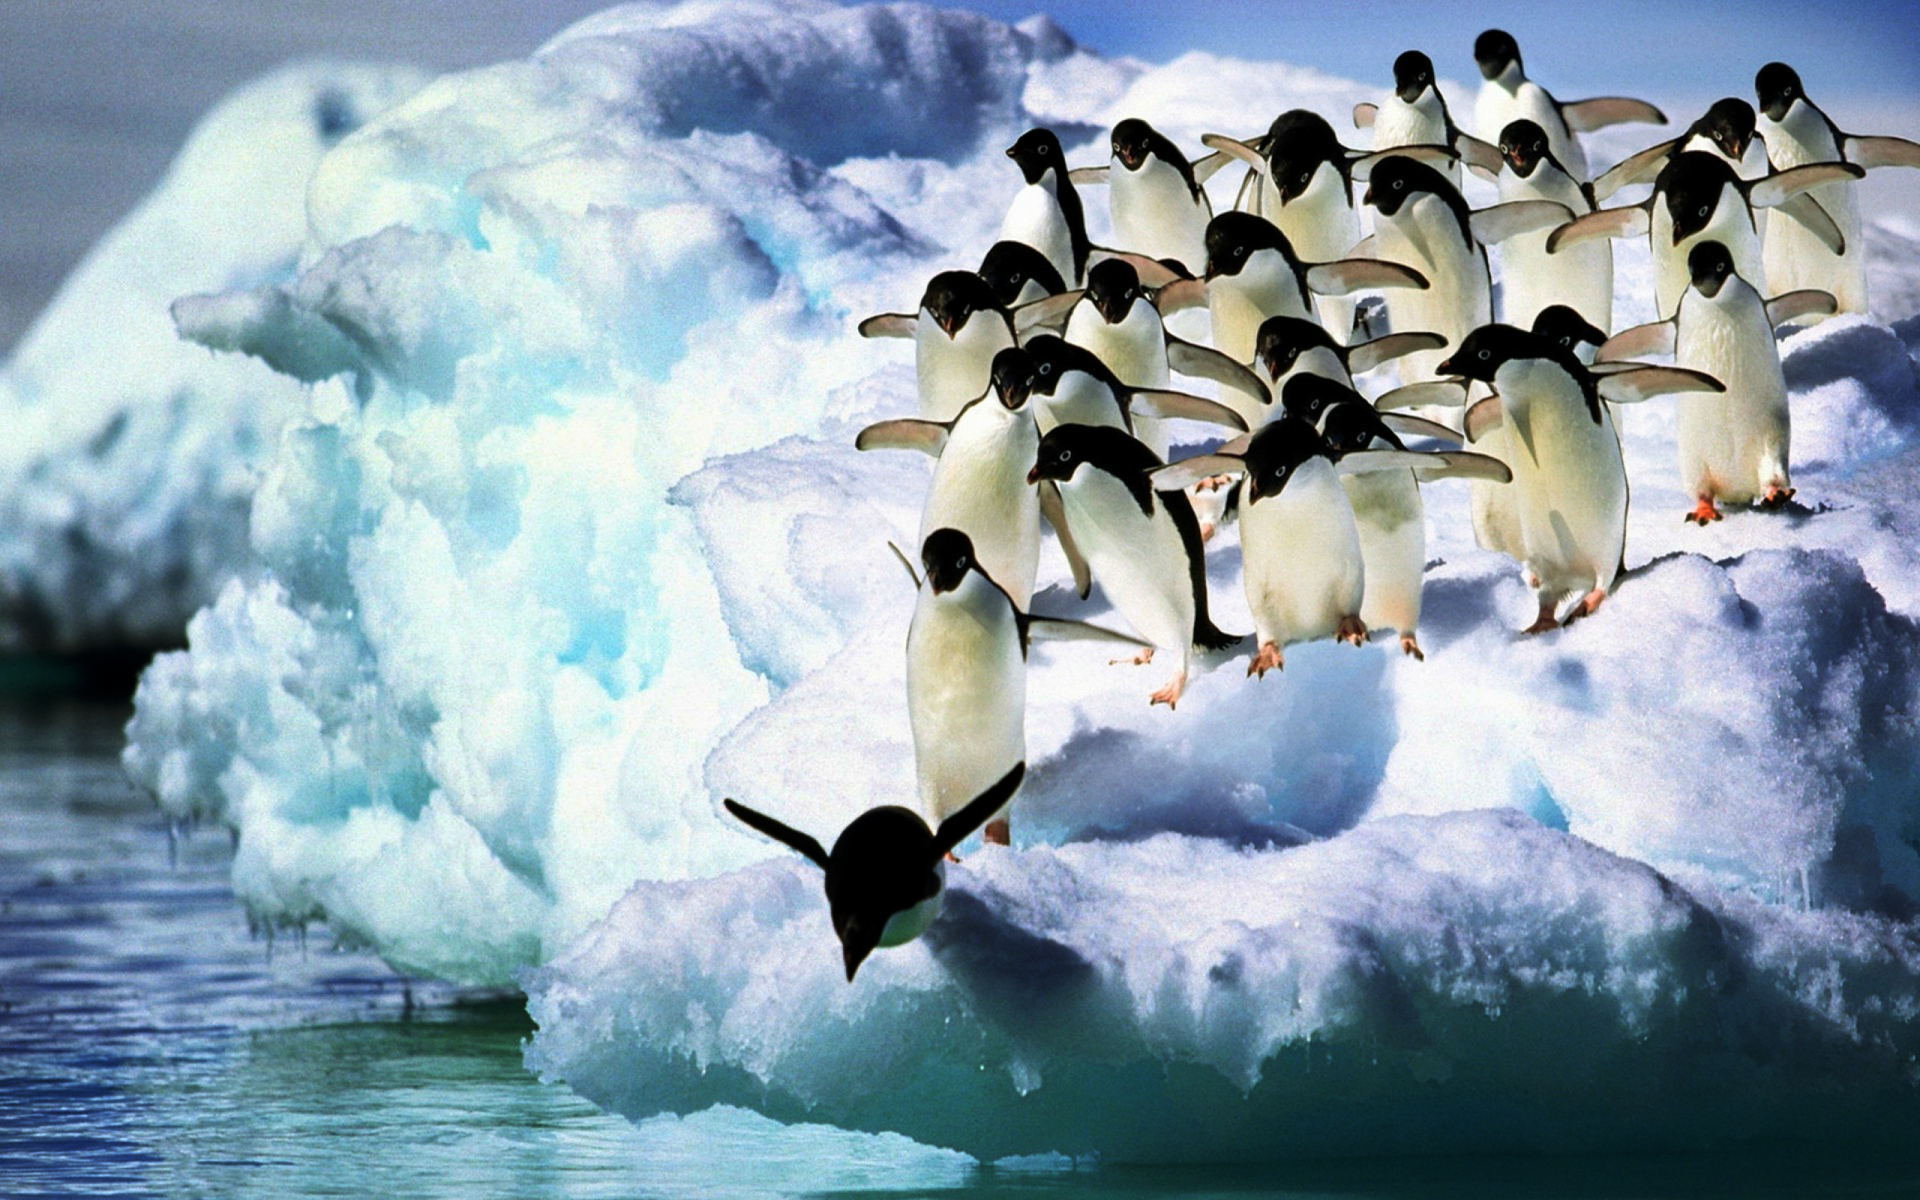 Adelie Penguins HD Wallpaper Background Image 1920x1200 ID 1920x1200